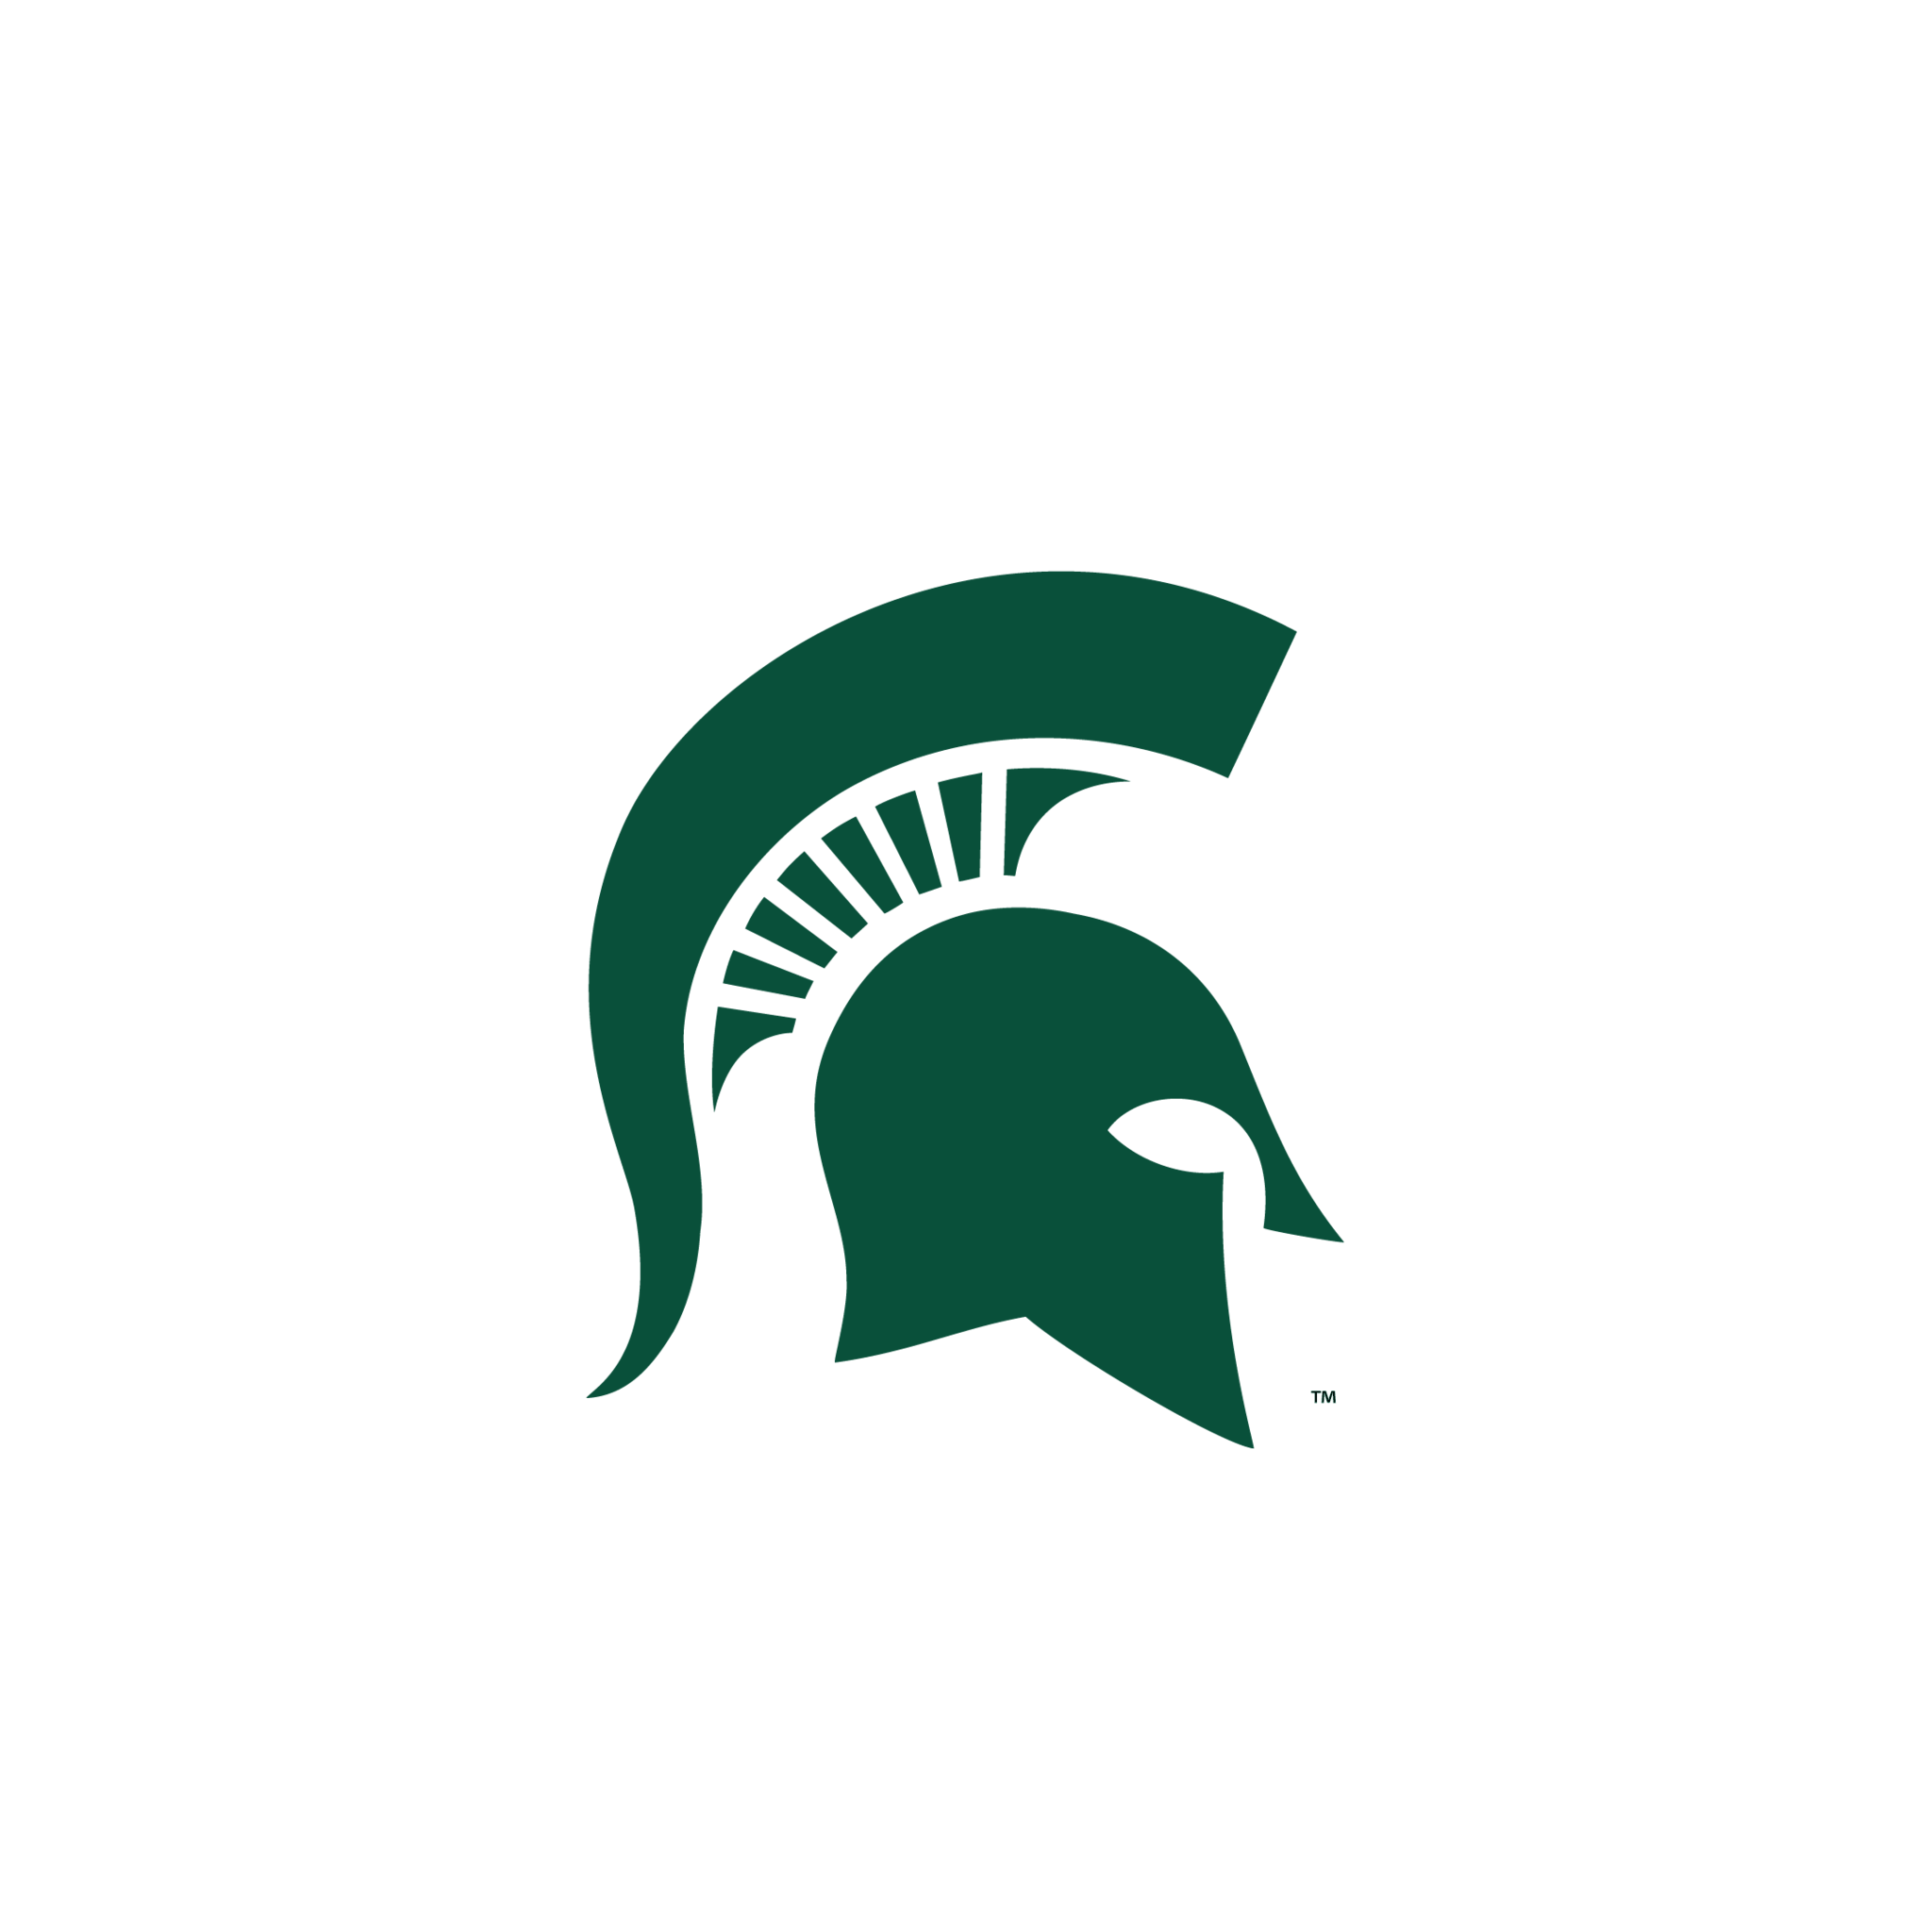 1000+ images about Michigan state | Logos, Models and ...